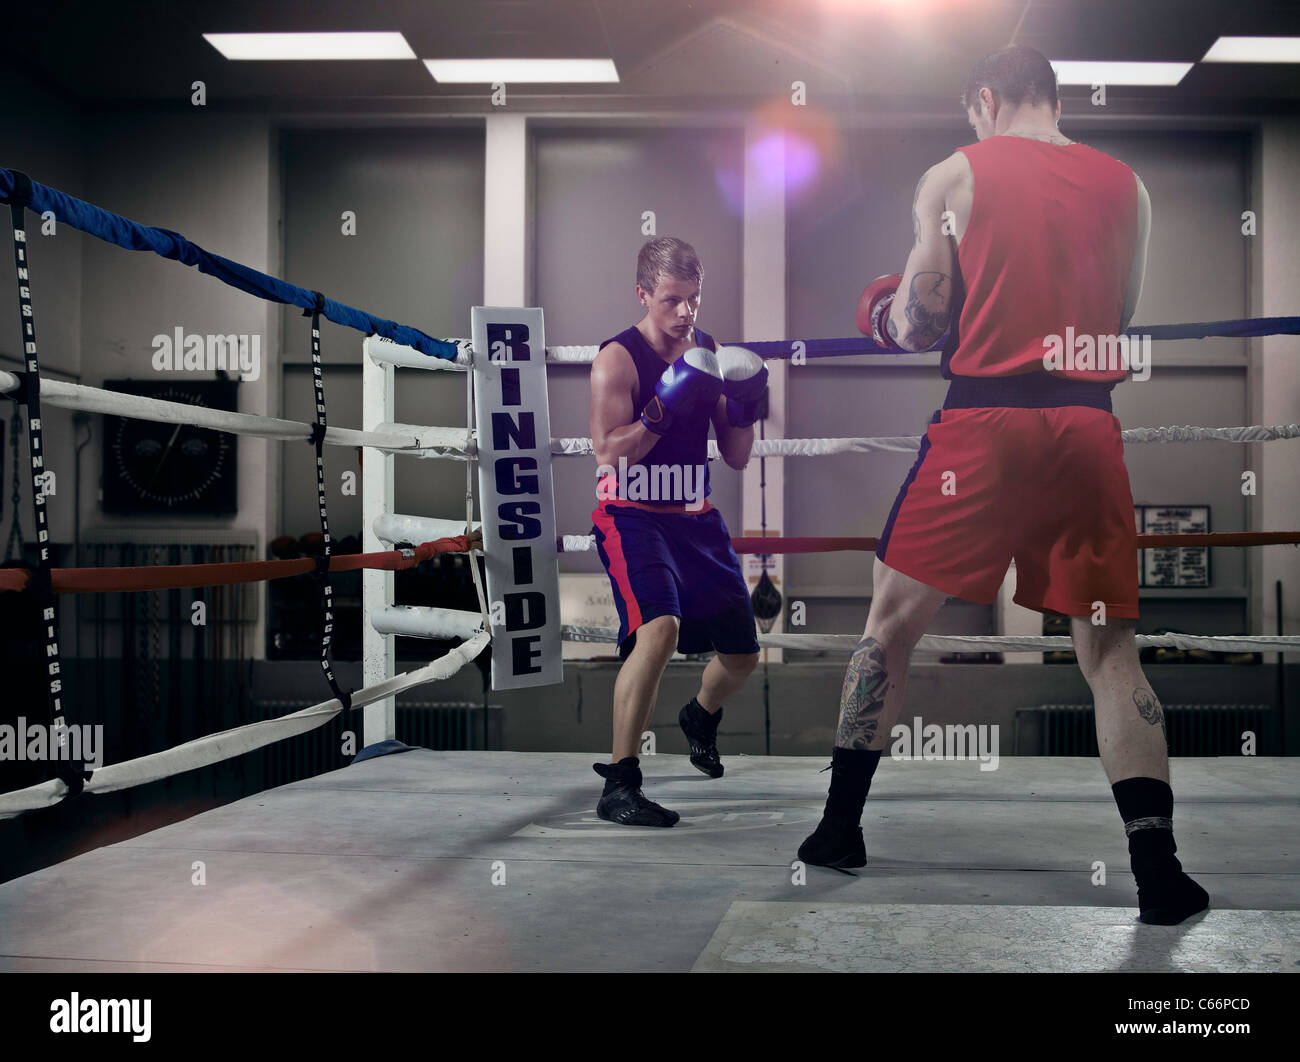 Boxers fighting in ring - Stock Image